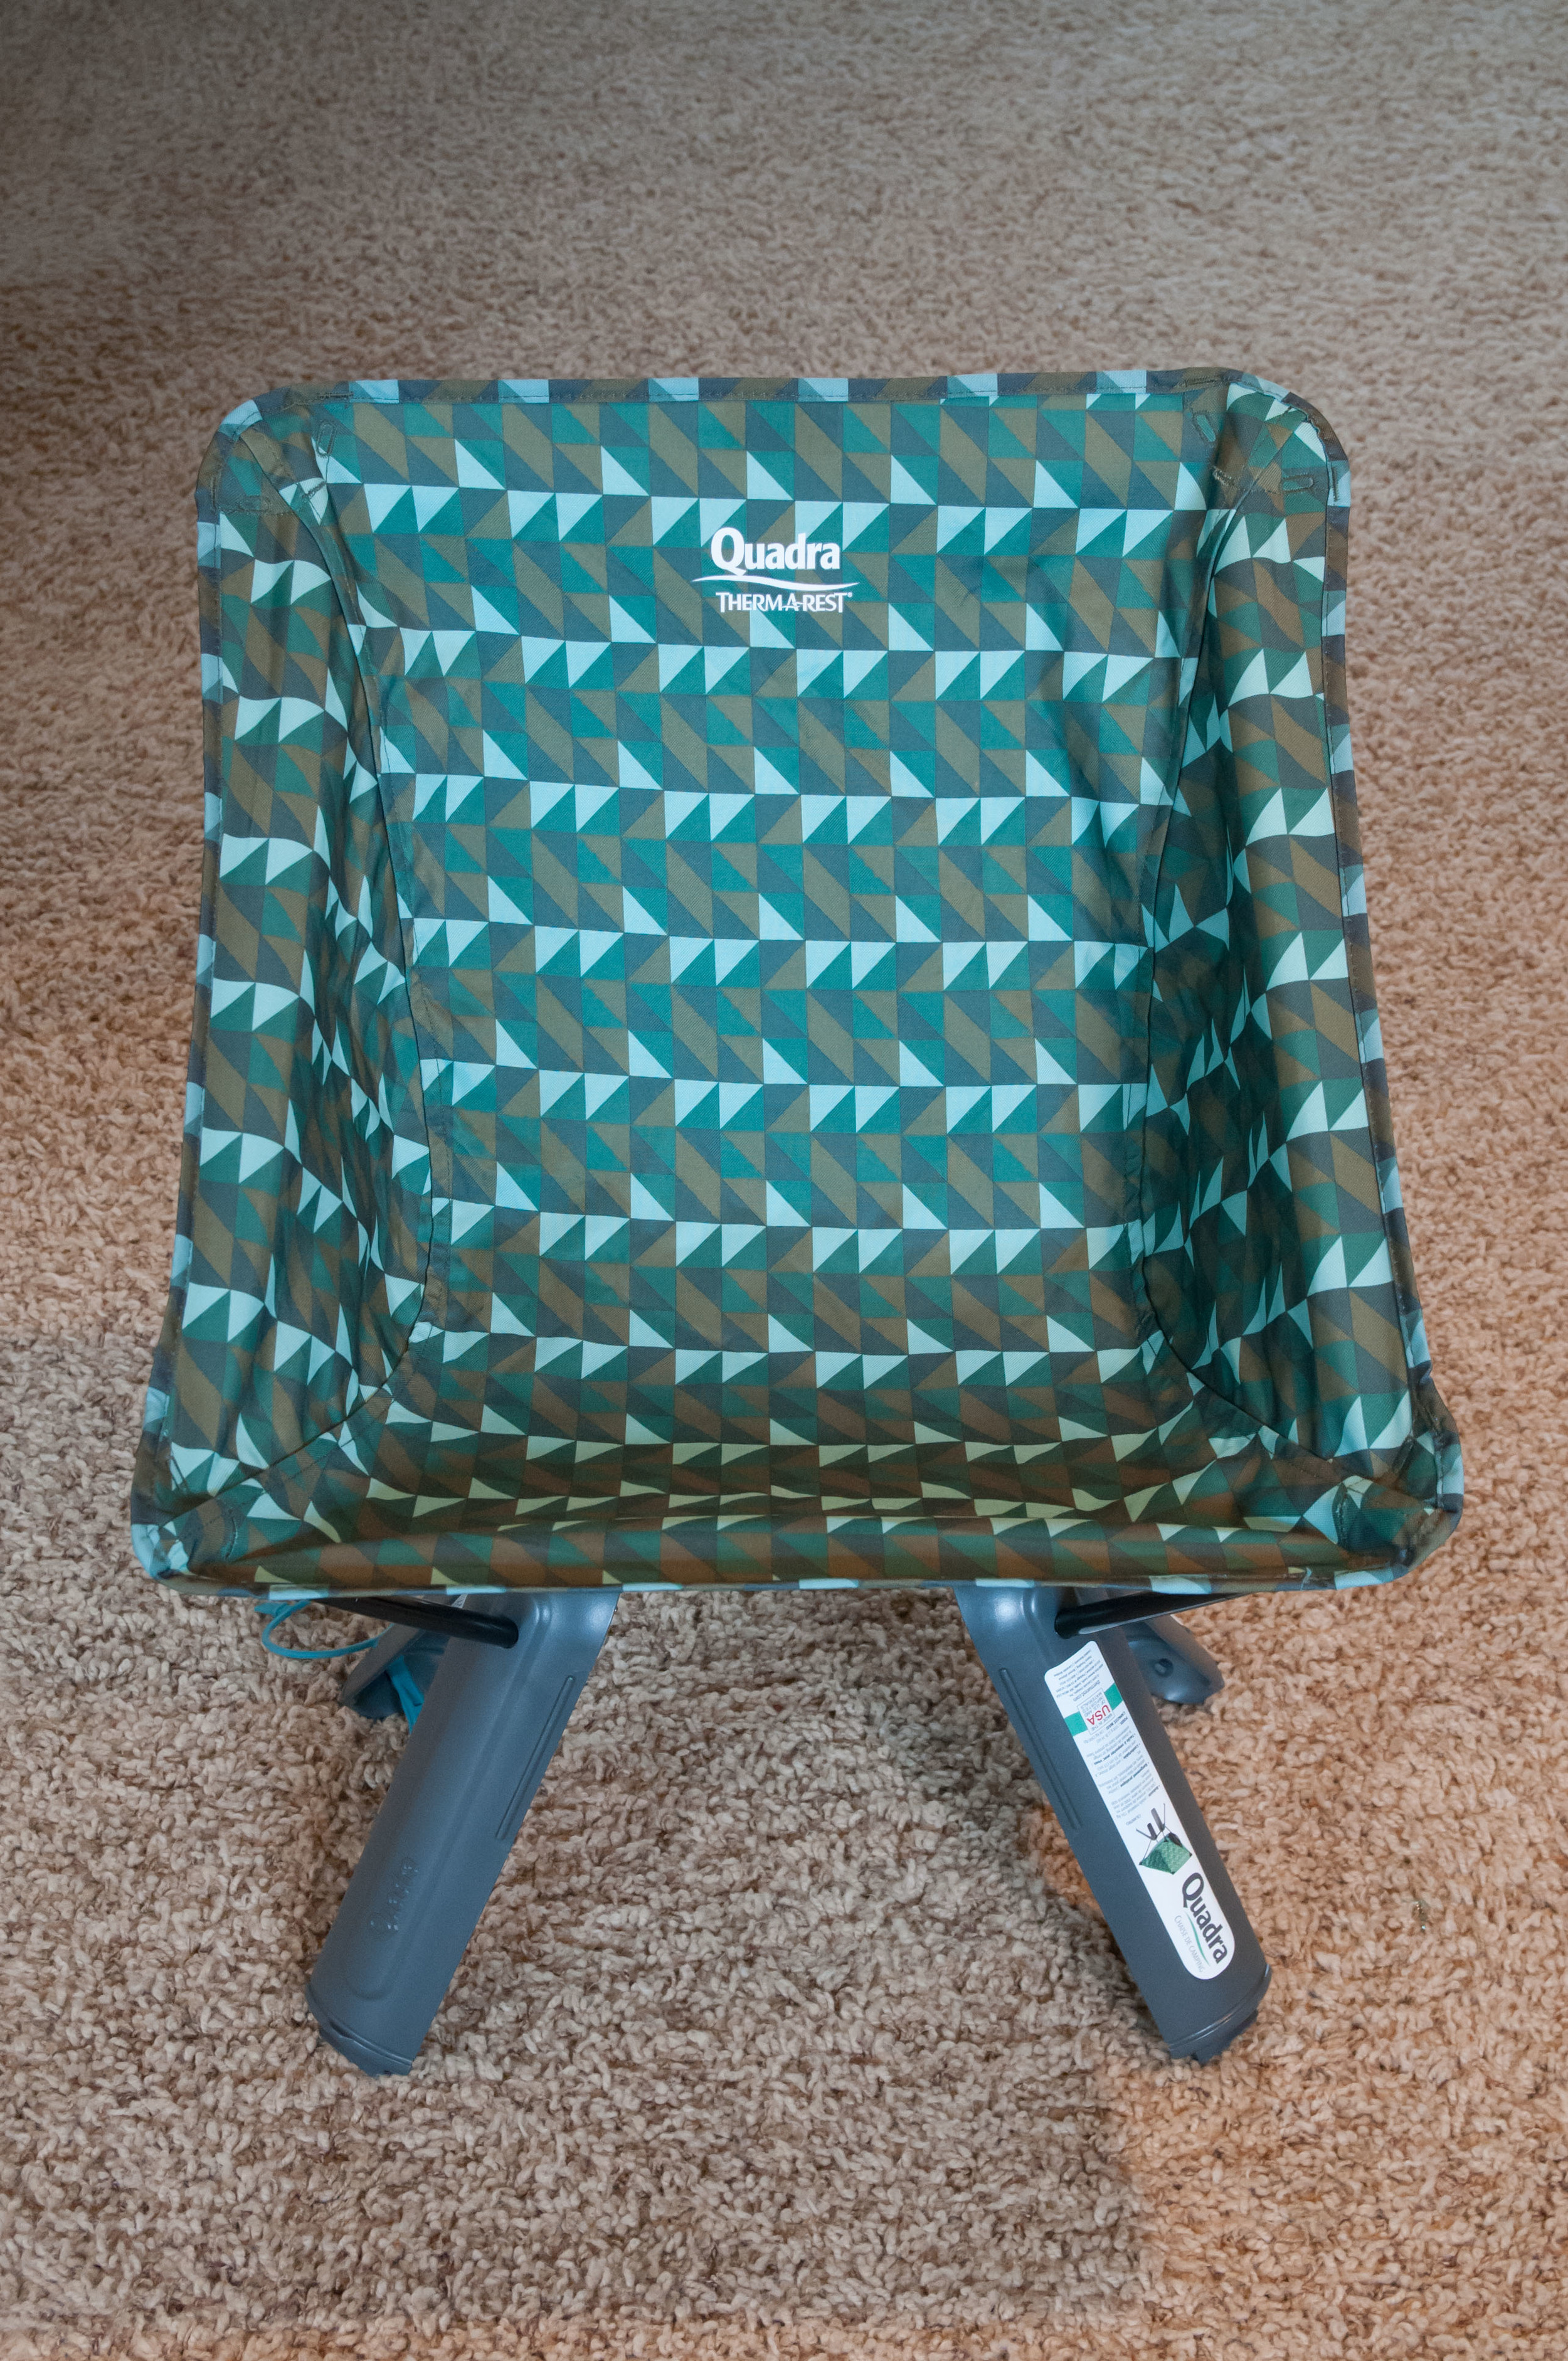 Therm-a-rest Quadra Chair Review